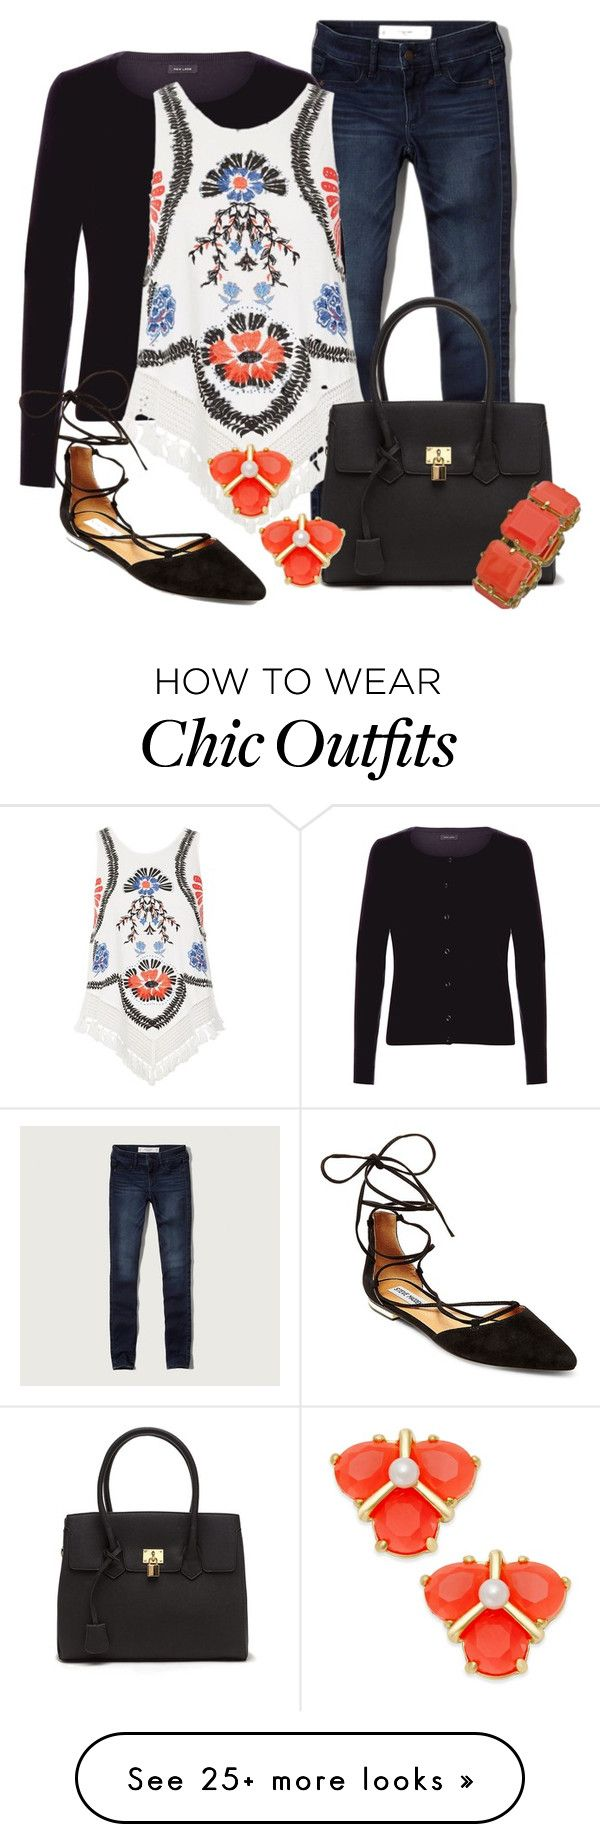 """Teacher Attire: Outfit 28"" by vanessa-bohlmann on Polyvore featuring Abercrombie & Fitch, New Look, River Island, Kate Spade, Steve Madden and Blu Bijoux"